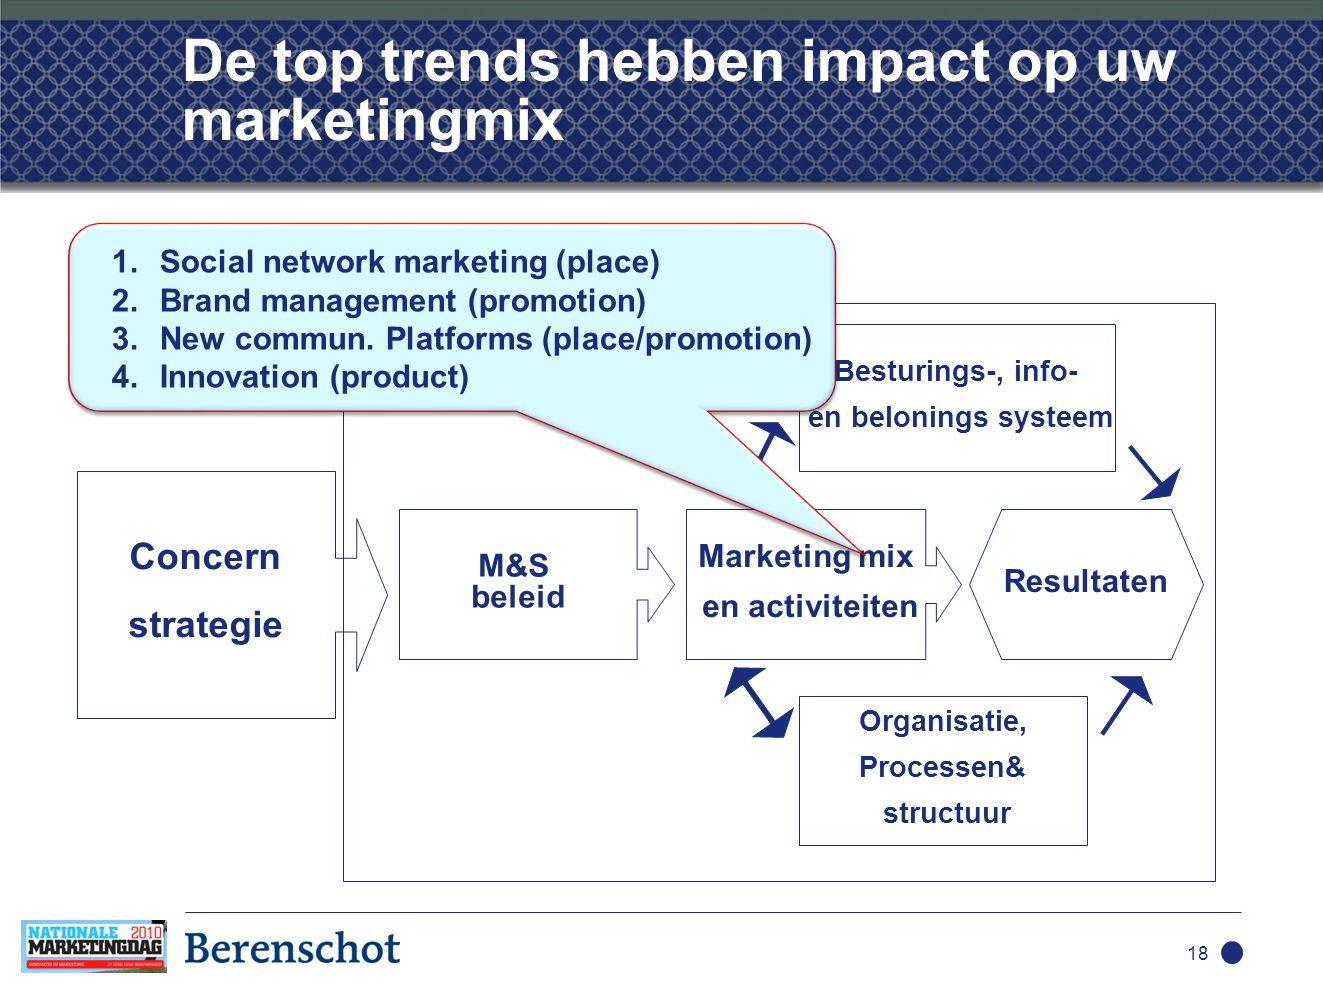 18 De top trends hebben impact op uw marketingmix M&S beleid Marketing mix en activiteiten Resultaten Besturings-, info- en belonings systeem Organisatie, Processen& structuur Concern strategie 1.Social network marketing (place) 2.Brand management (promotion) 3.New commun.